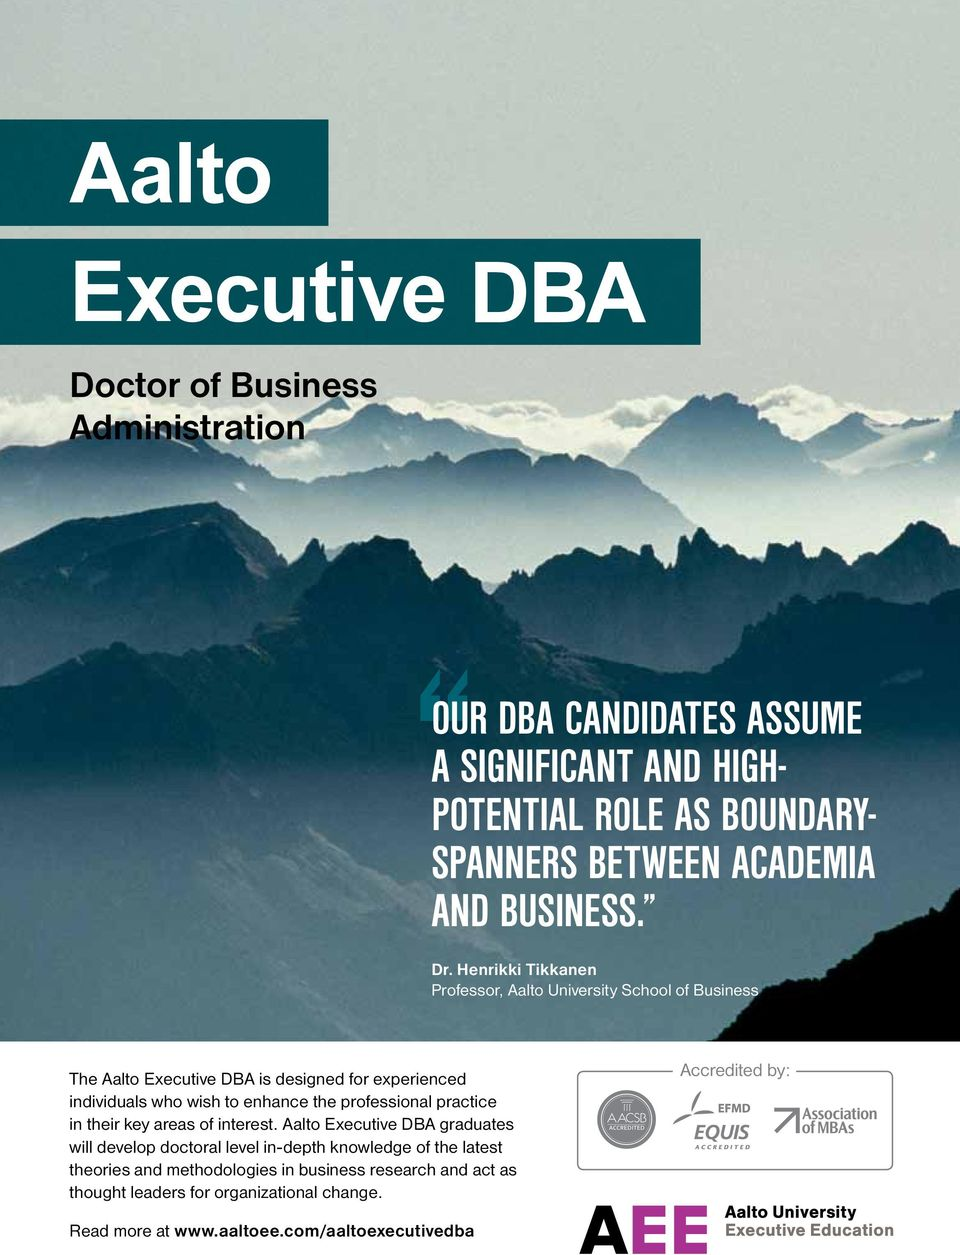 Henrikki Tikkanen Professor, Aalto University School of Business The Aalto Executive DBA is designed for experienced individuals who wish to enhance the